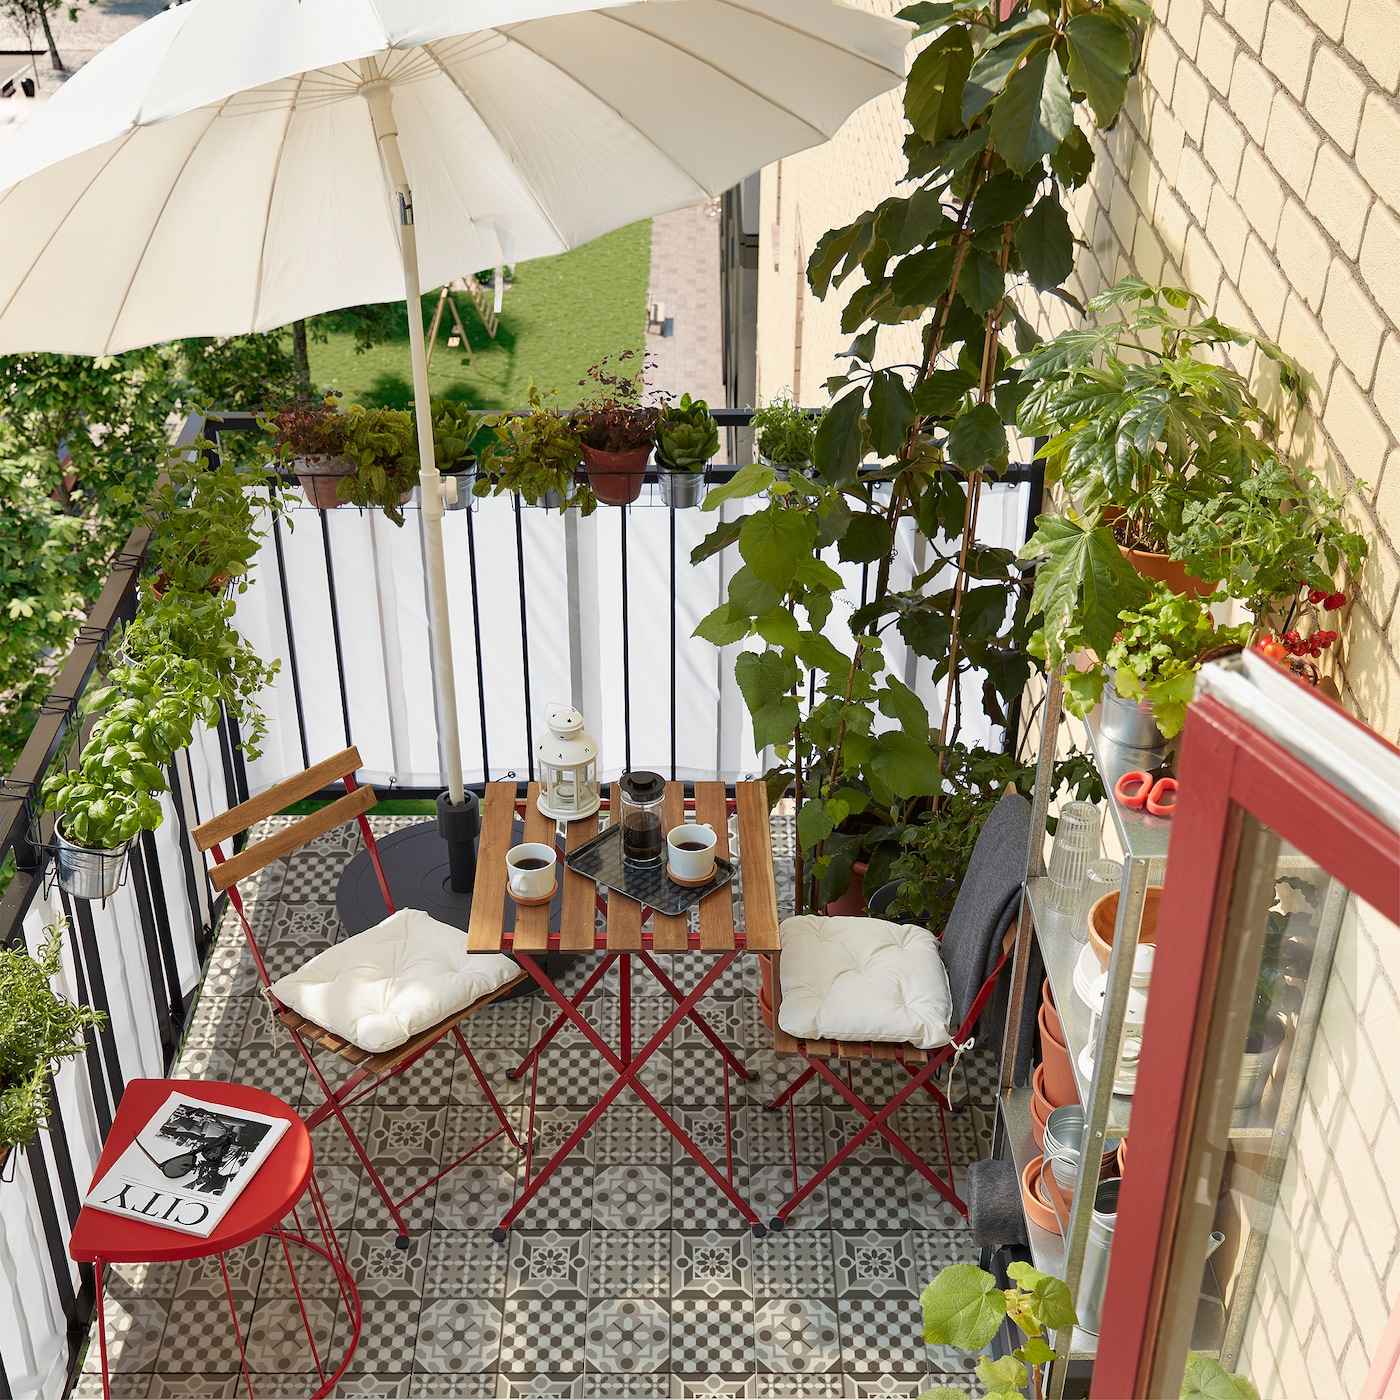 A small balcony with lots of herbs and plants, a red stool, a white parasol and two chairs and a table that are foldable.